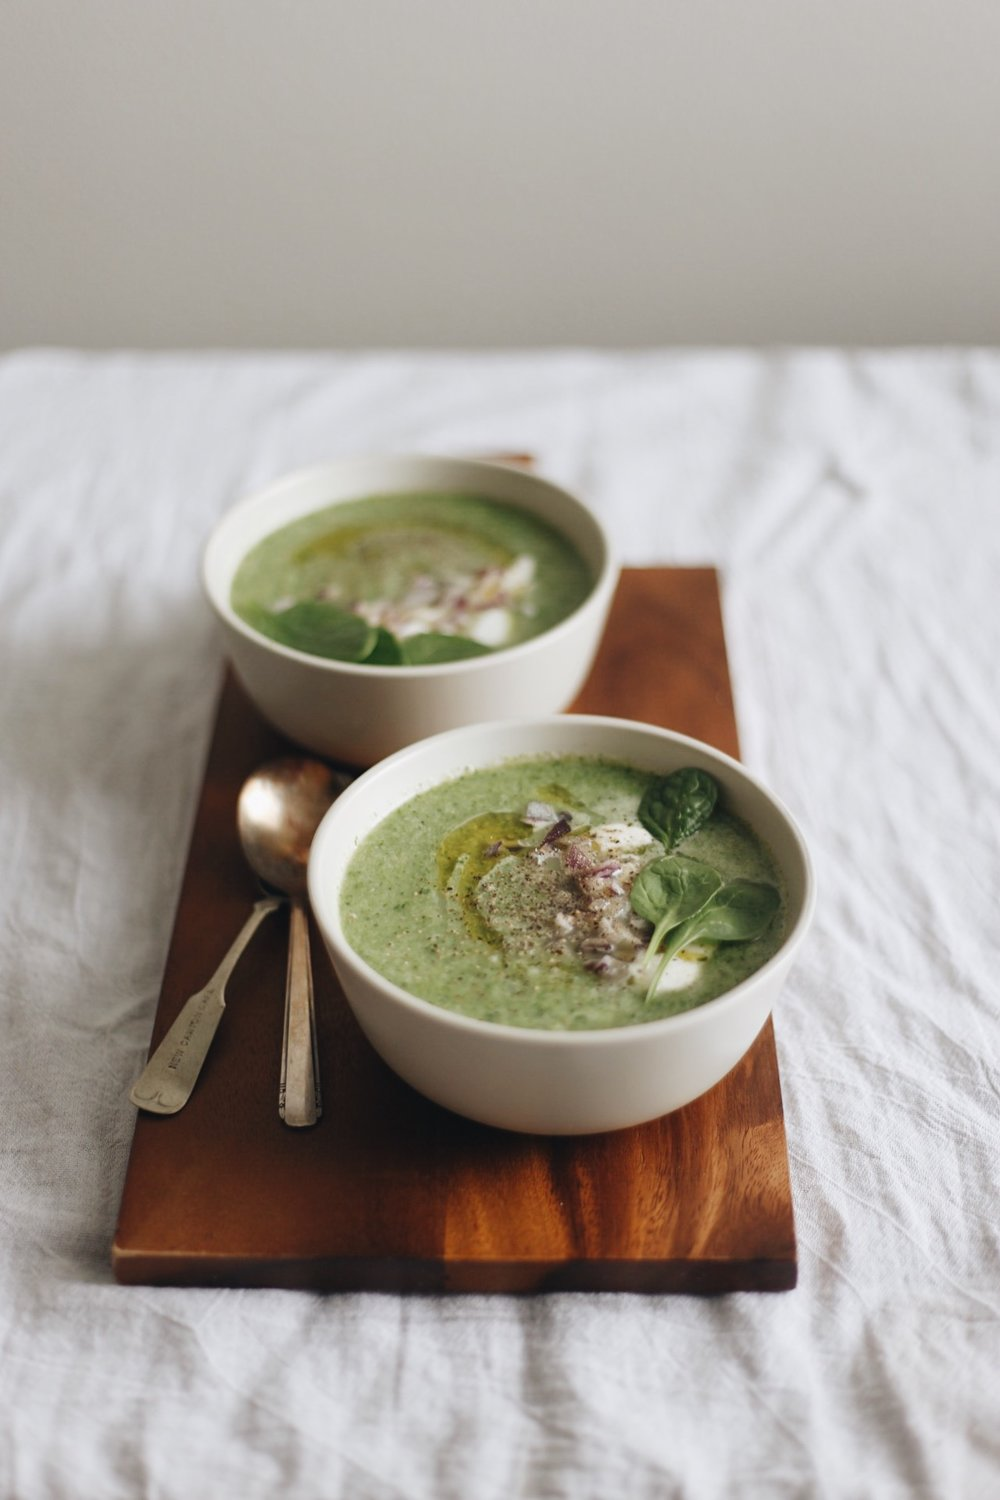 broccolispinach_miso_soup_3.JPG